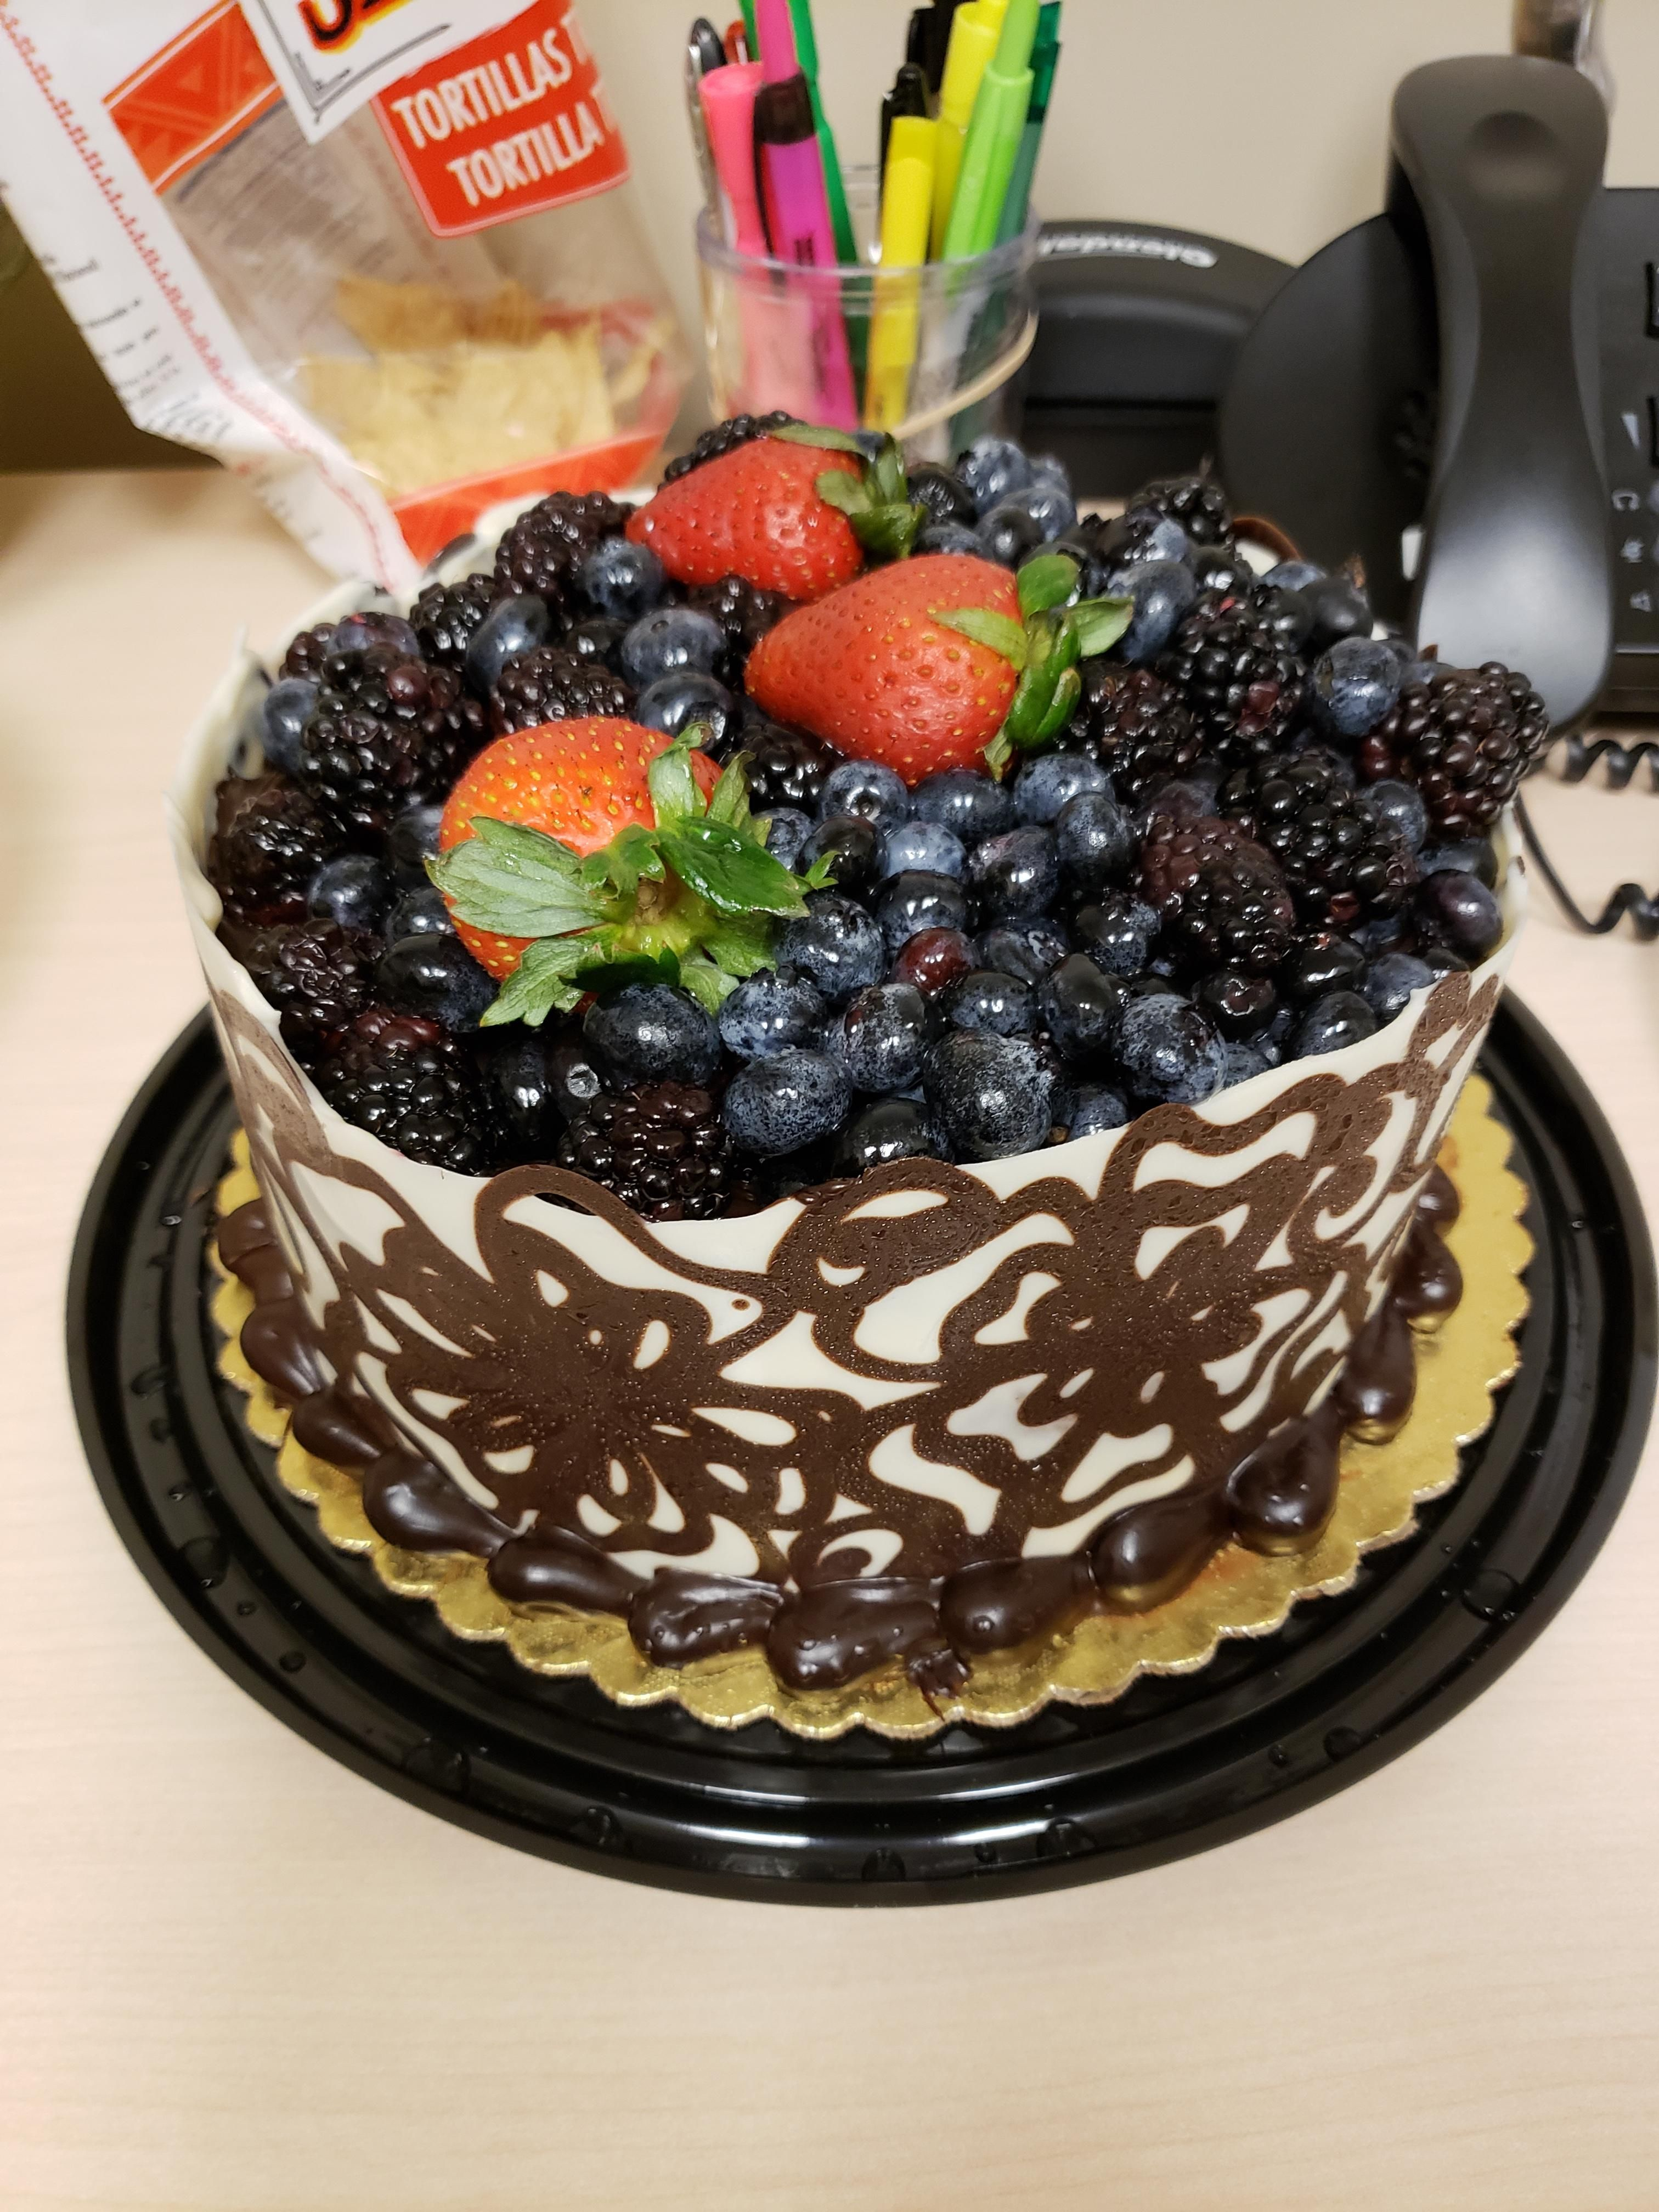 I Ate This Most Beautiful And Delicious Chocolate Cake With Berries